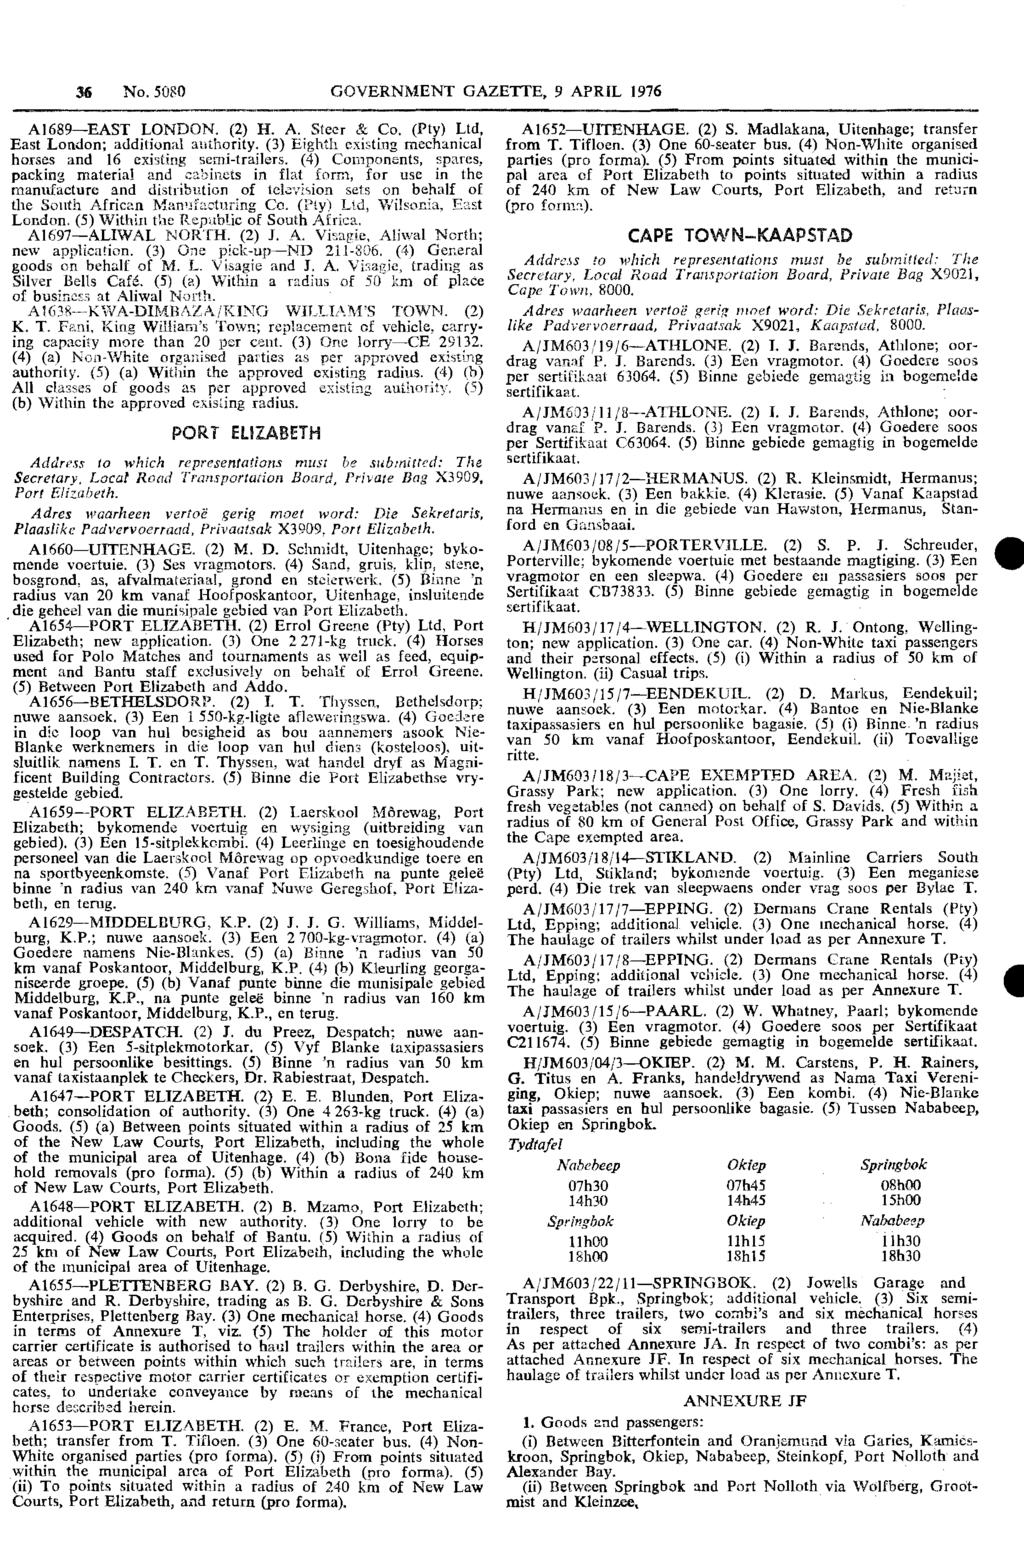 Republic Of South Africa Government Gazette Staatskoerant Van Die Wiring Diagram Trailer Spares For Sale Venter 36 No 5080 Gazetie 9 April 1976 Ai689 East London